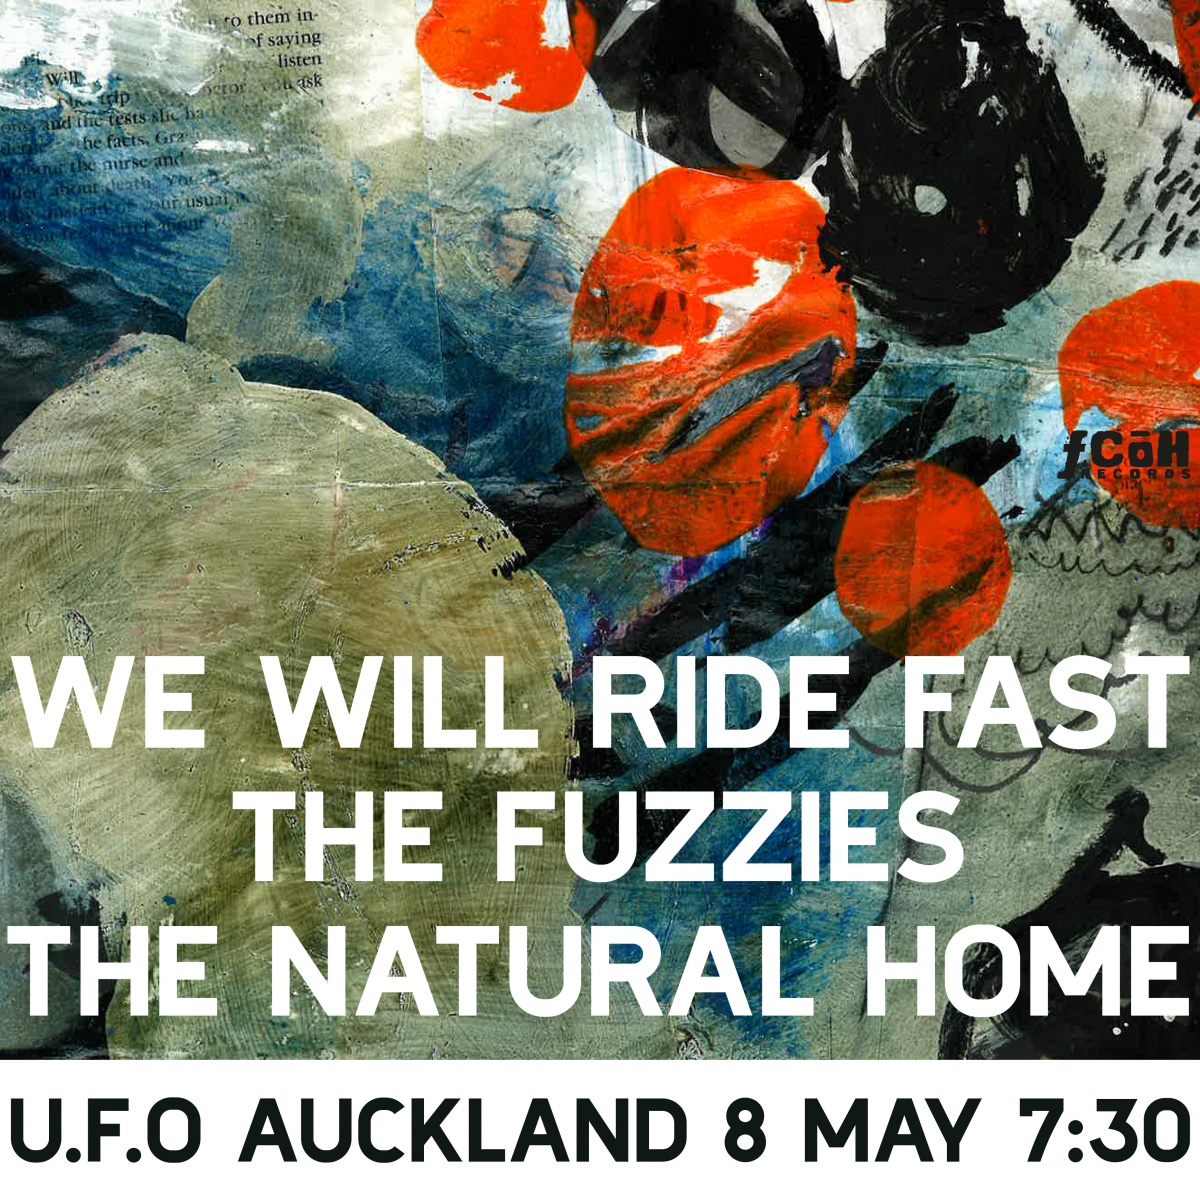 We Will Ride Fast, The Fuzzies, The Natural Home